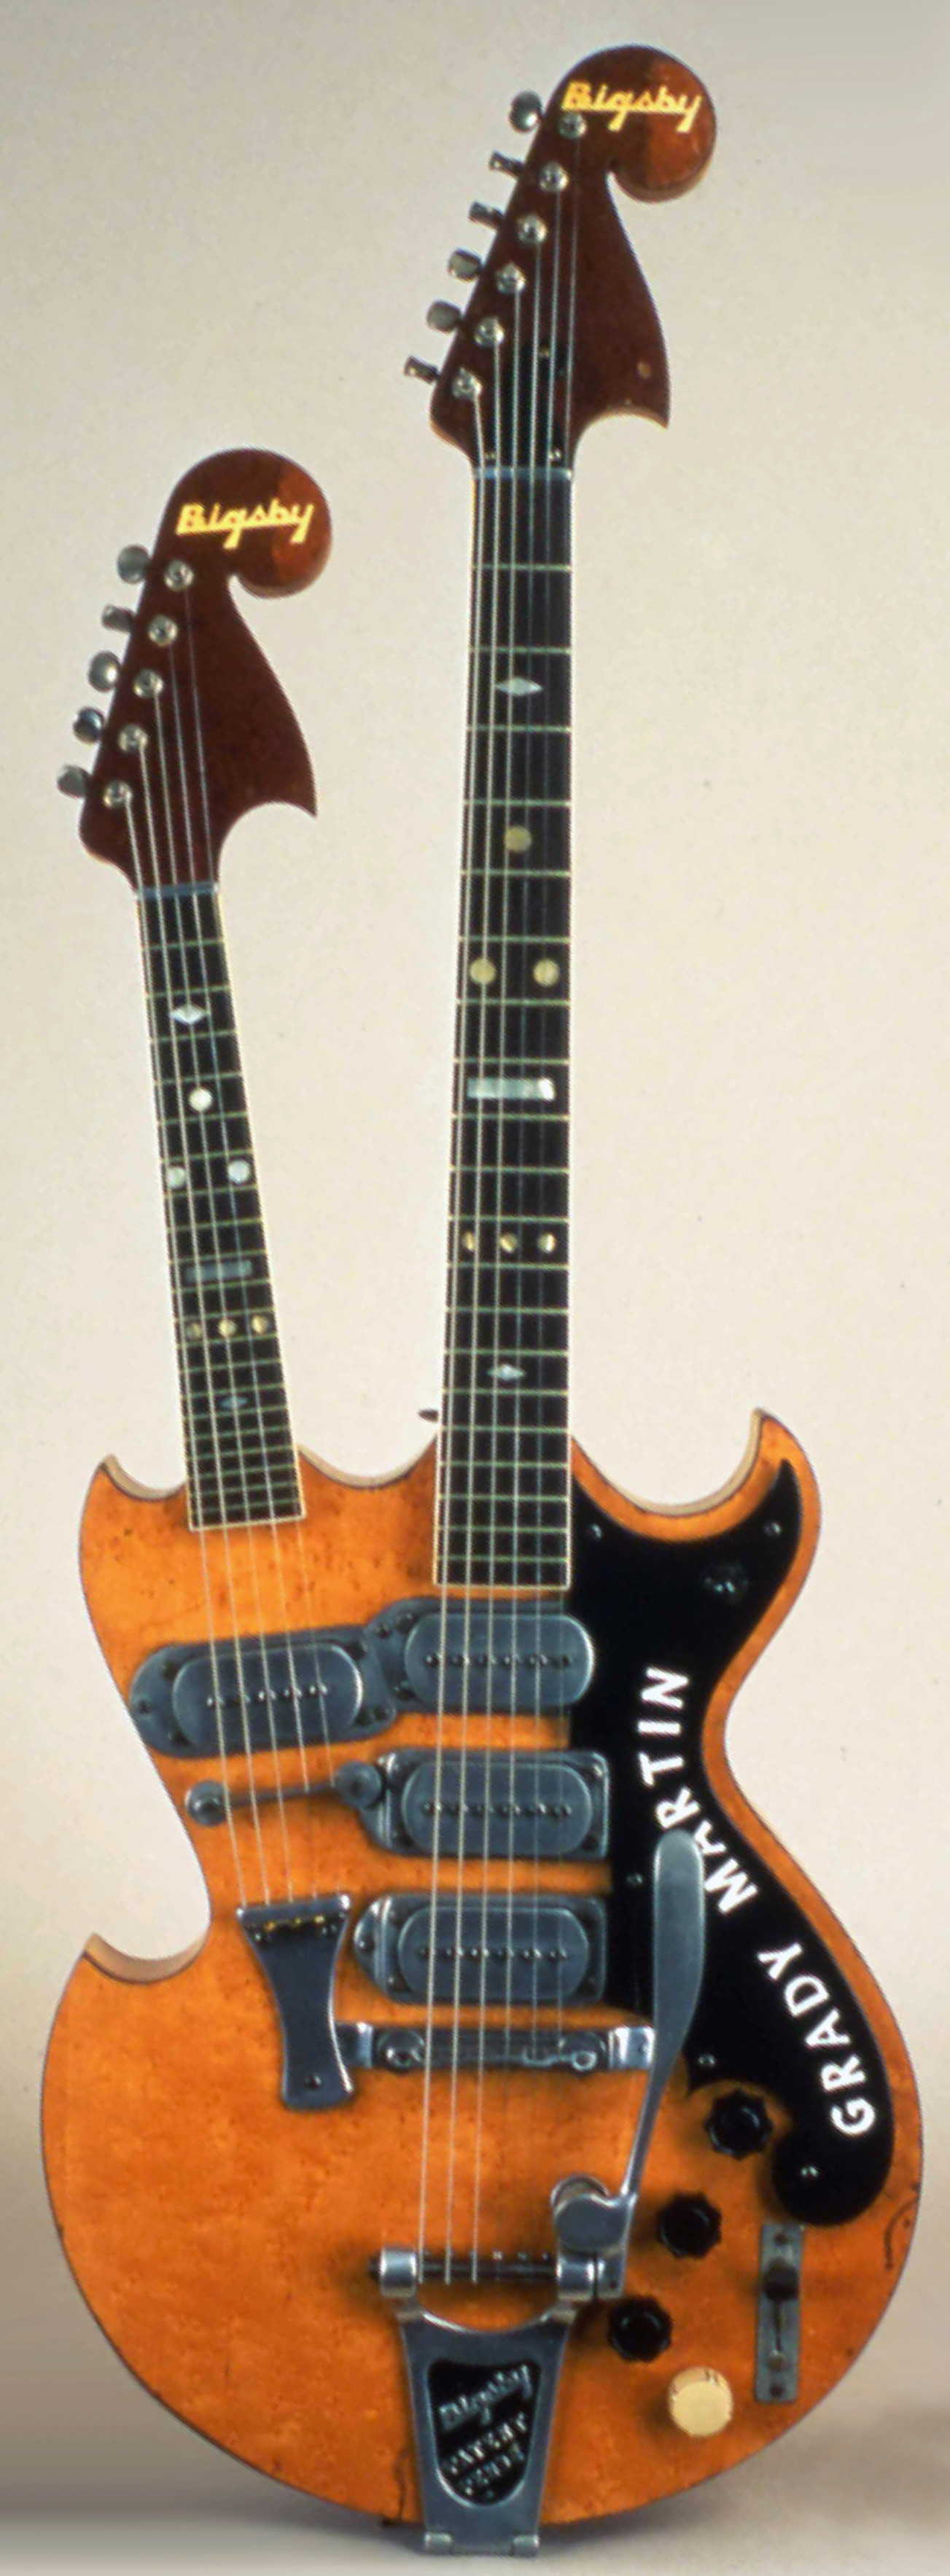 Image of Bigsby Double Neck Guitar